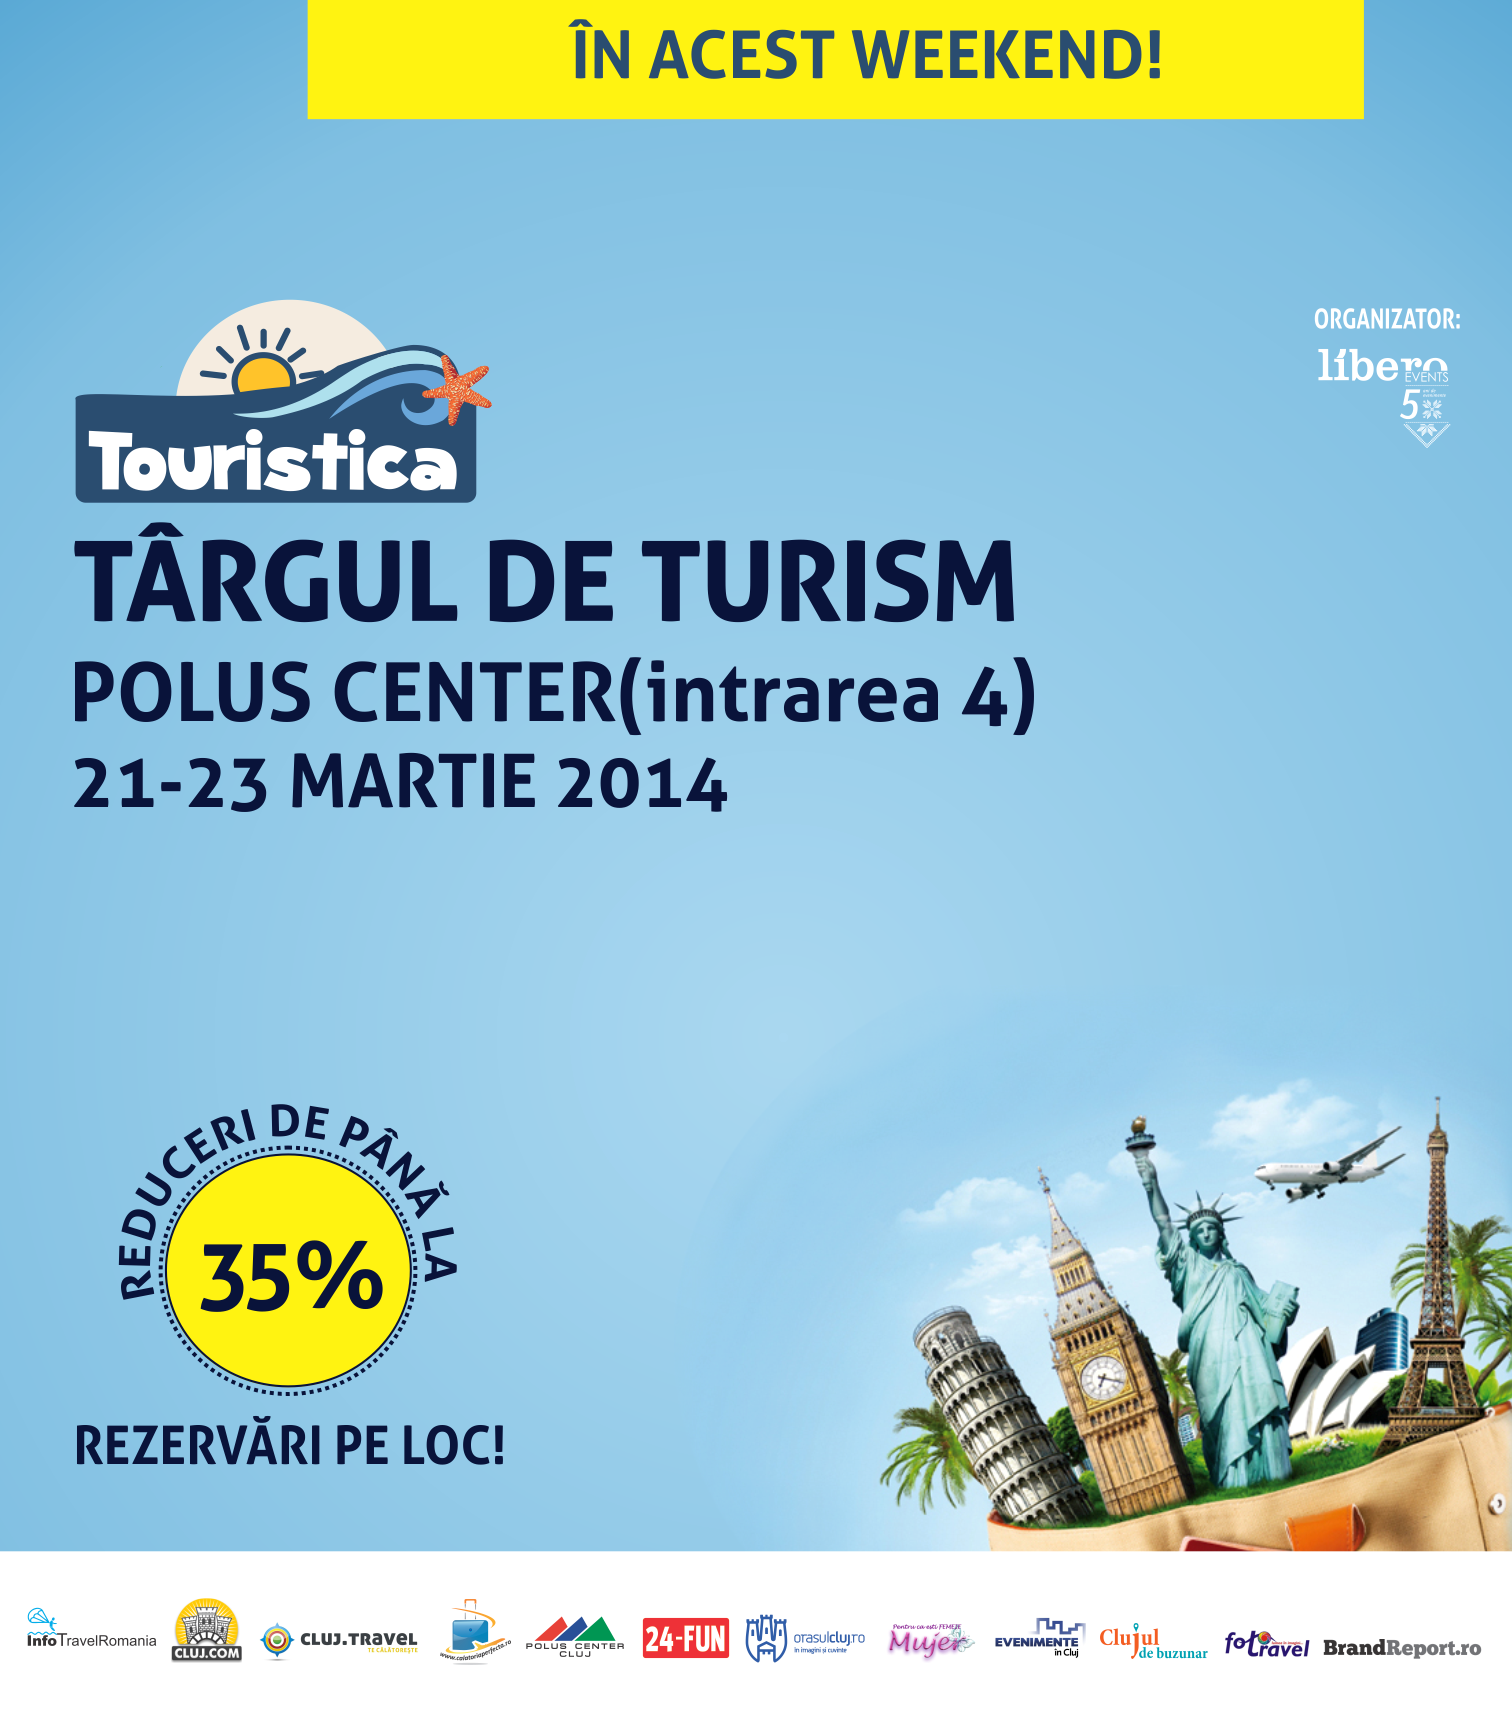 Touristica - in acest weekend